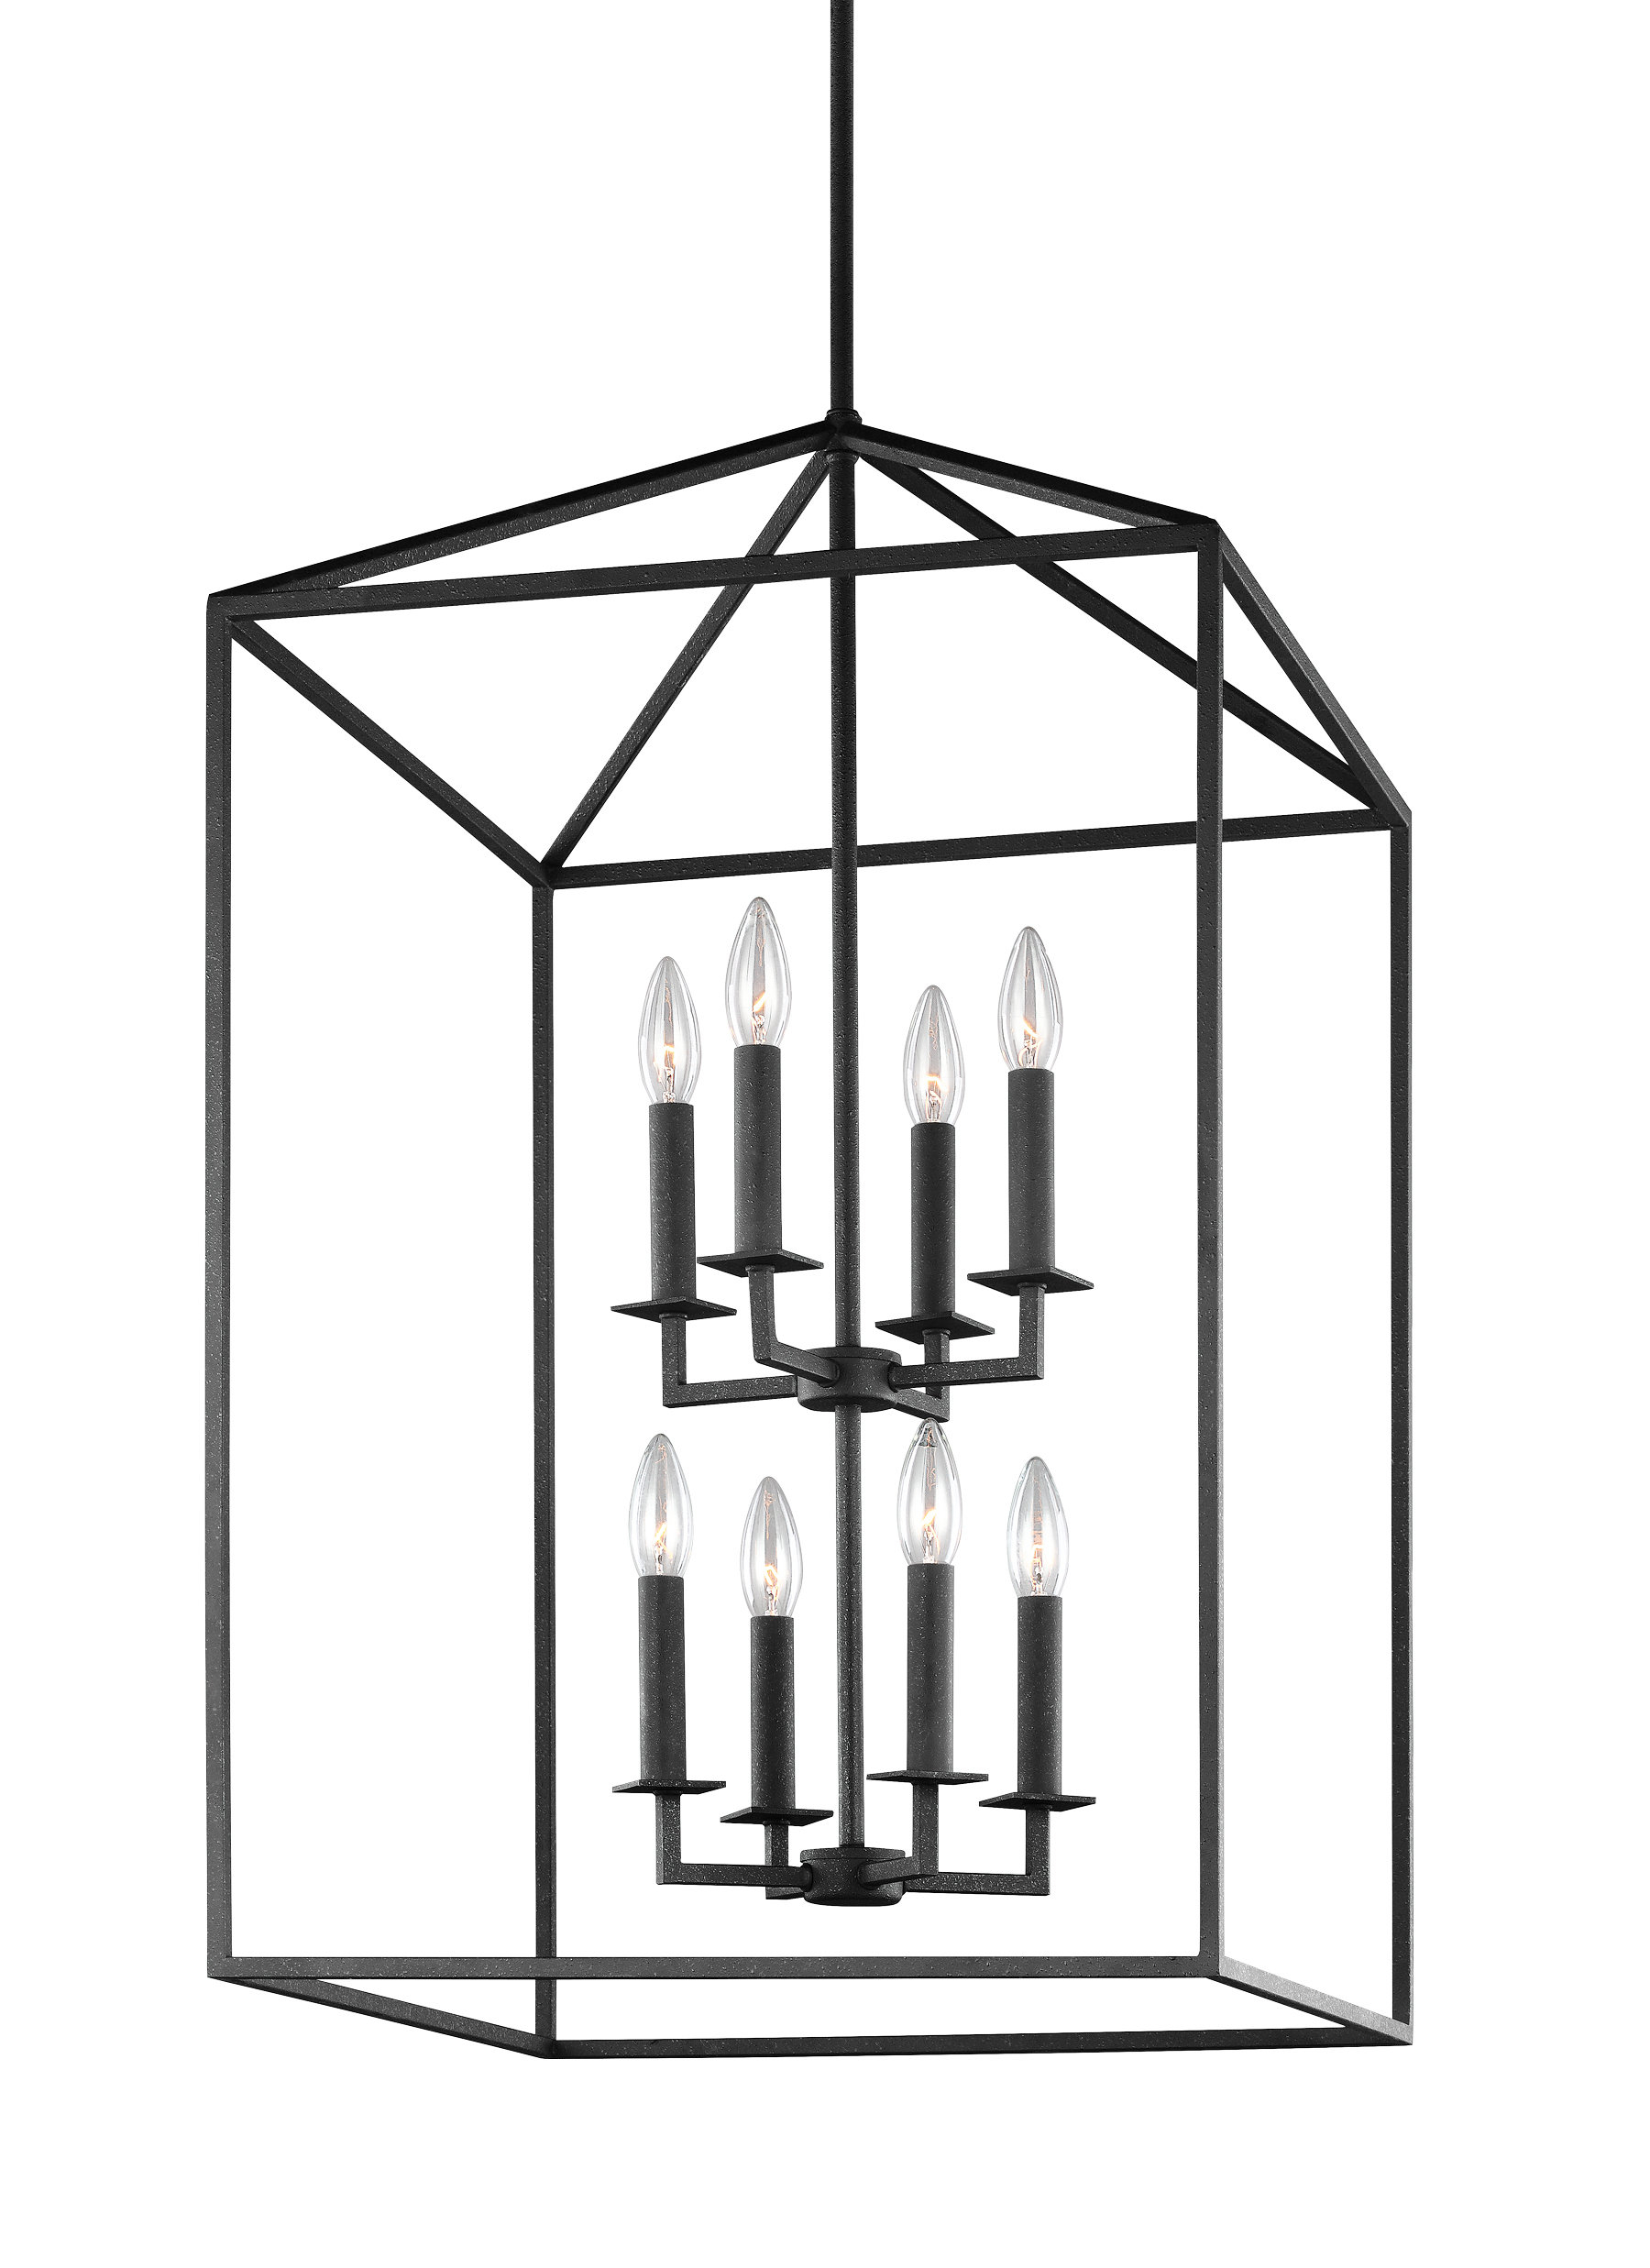 Carmen 8 Light Lantern Tiered Pendants Intended For Most Up To Date Odie 8 Light Lantern Tiered Pendant (View 8 of 20)